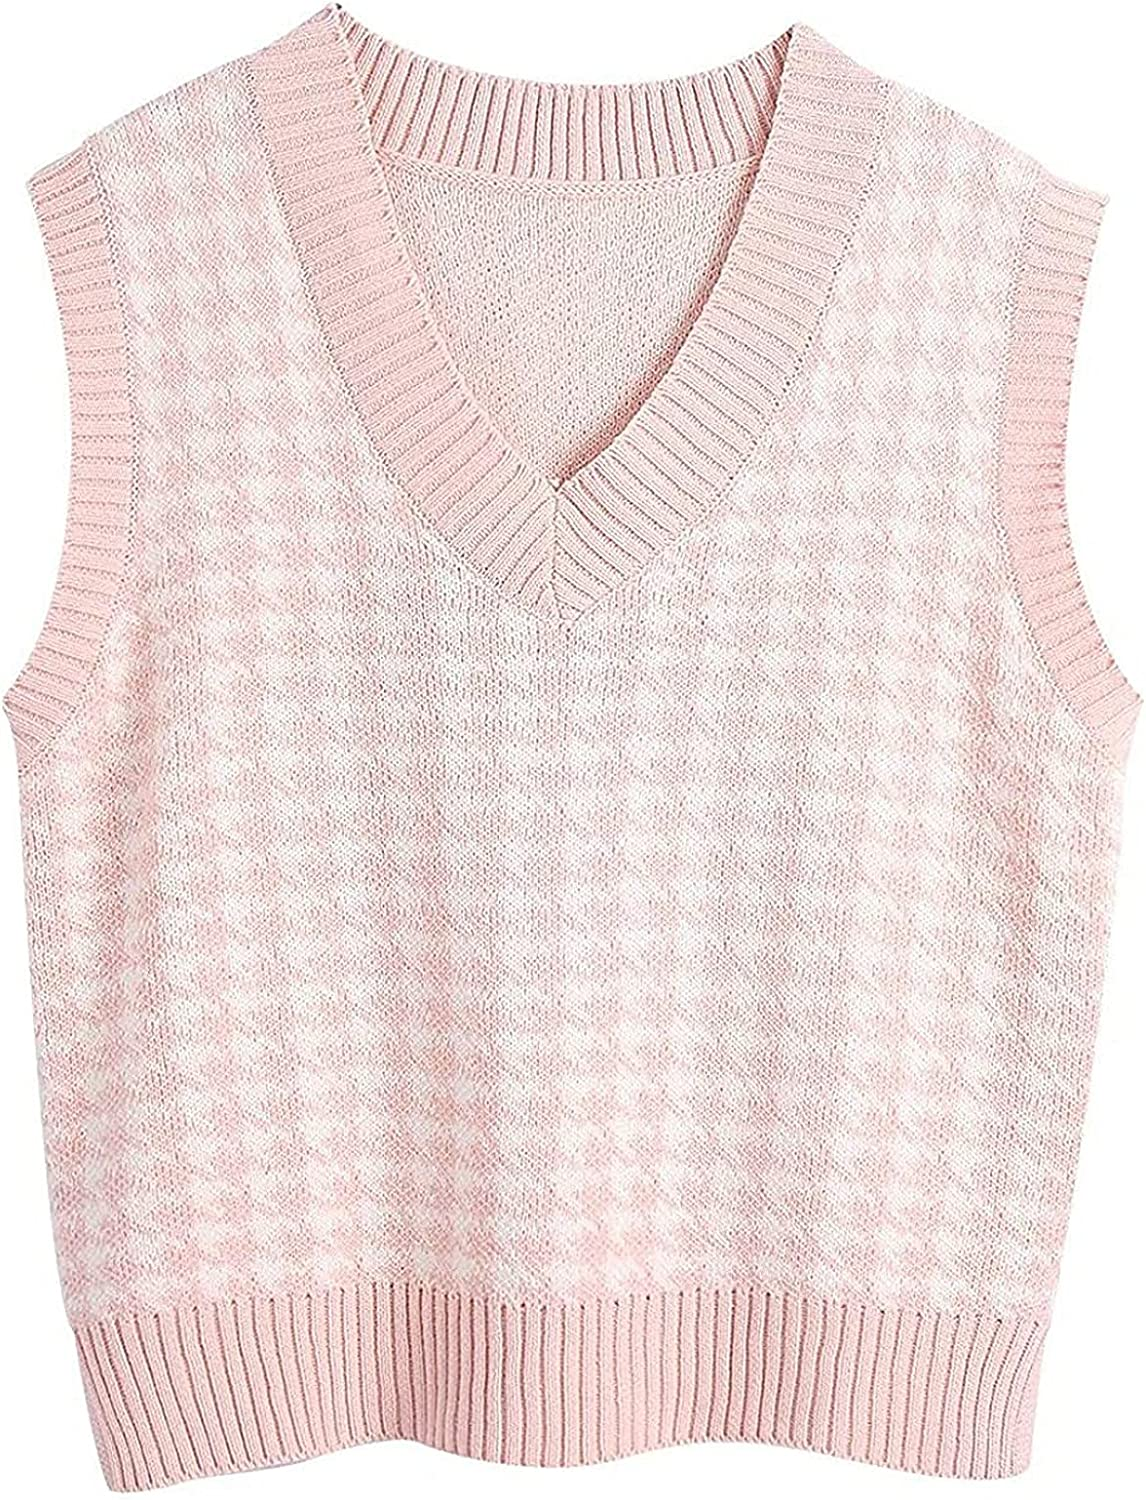 Women's Sweater Vest Casual V-Neck Pullover Contrast Color Sleeveless Shirt Top